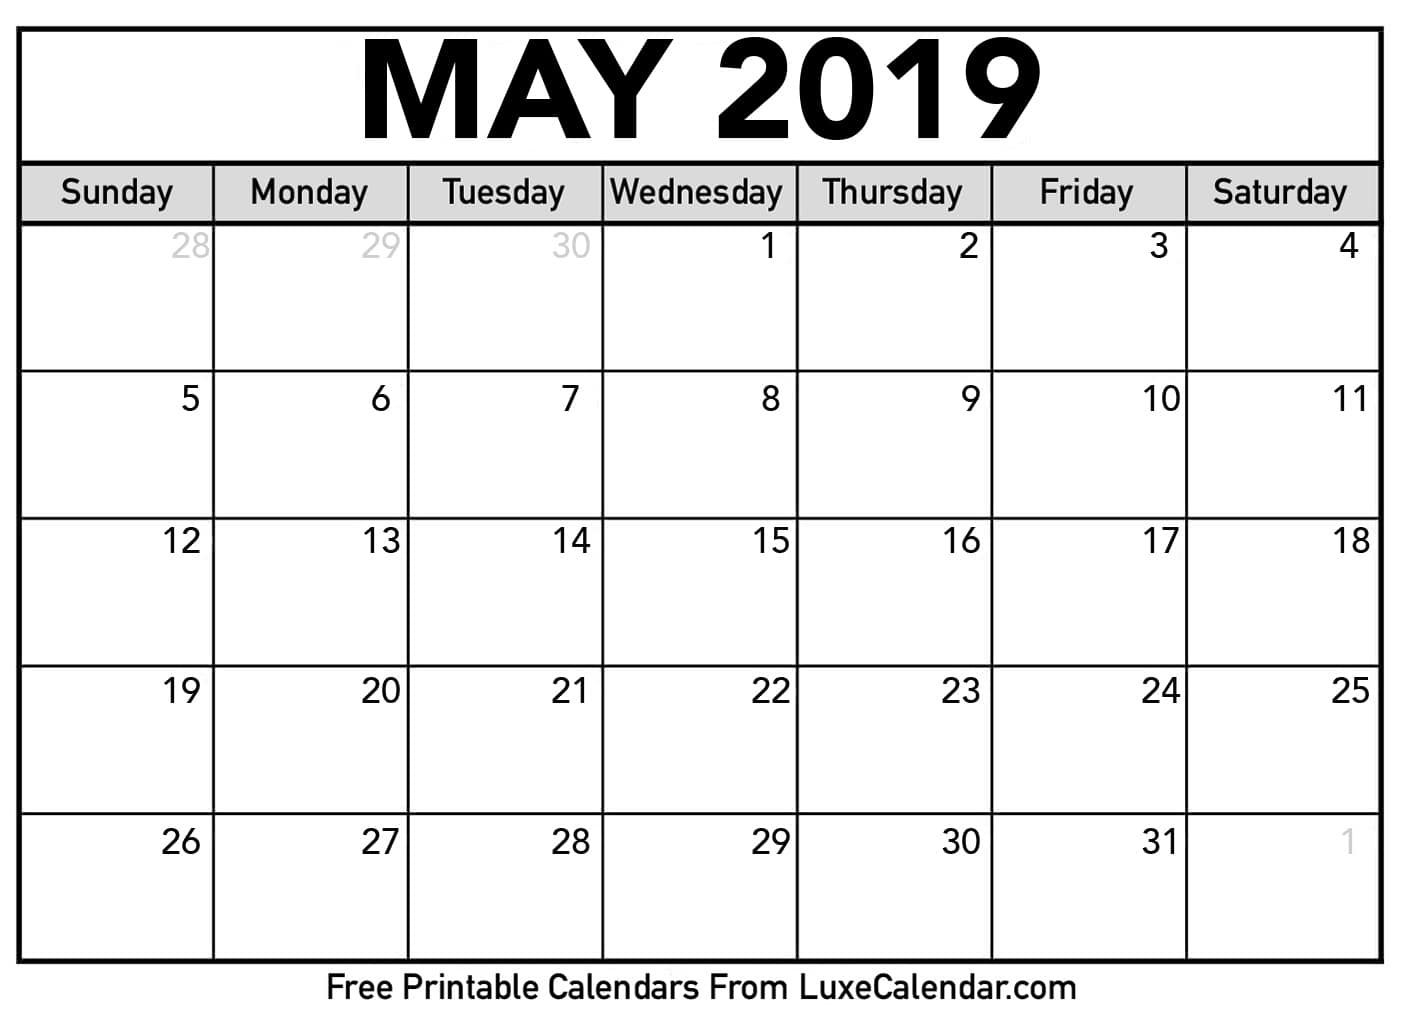 Blank May 2019 Calendar Printable - Luxe Calendar May 8 2019 Calendar